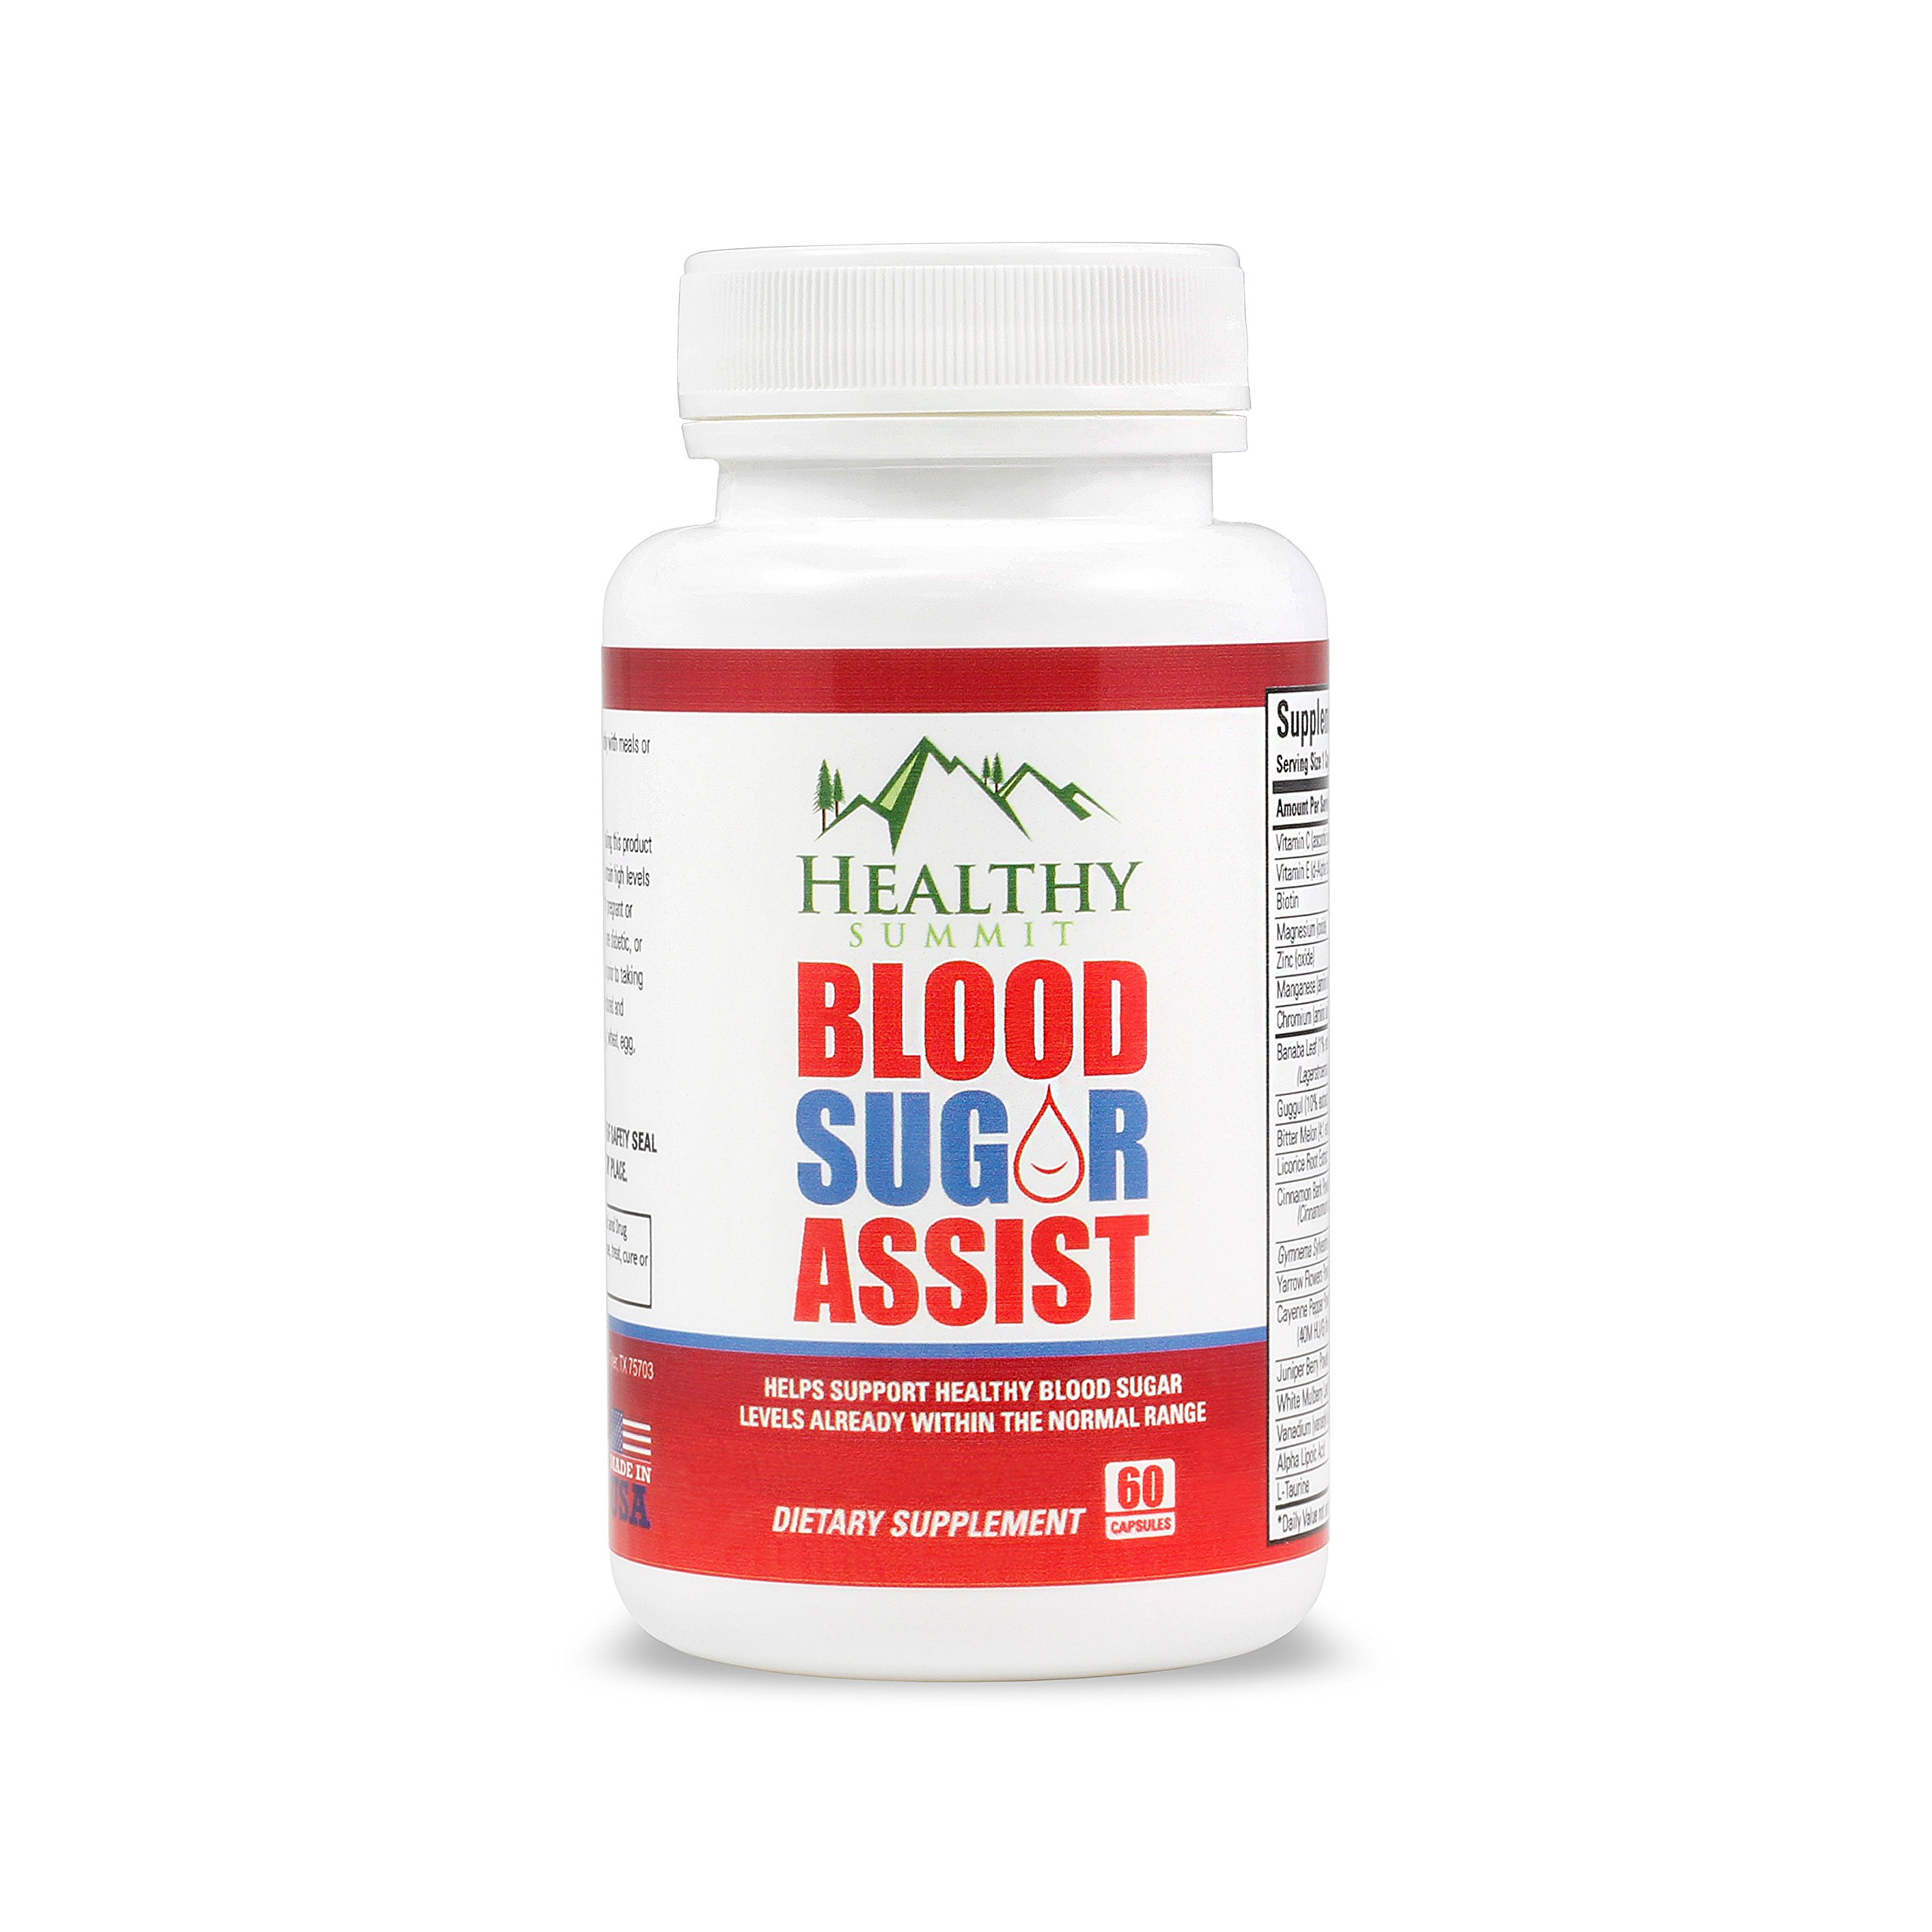 Healthy Summit Blood Sugar Support Supplement - Made with Gymnema, Cinnamon & Chromium - Helps Support Healthy Blood Glucose Levels